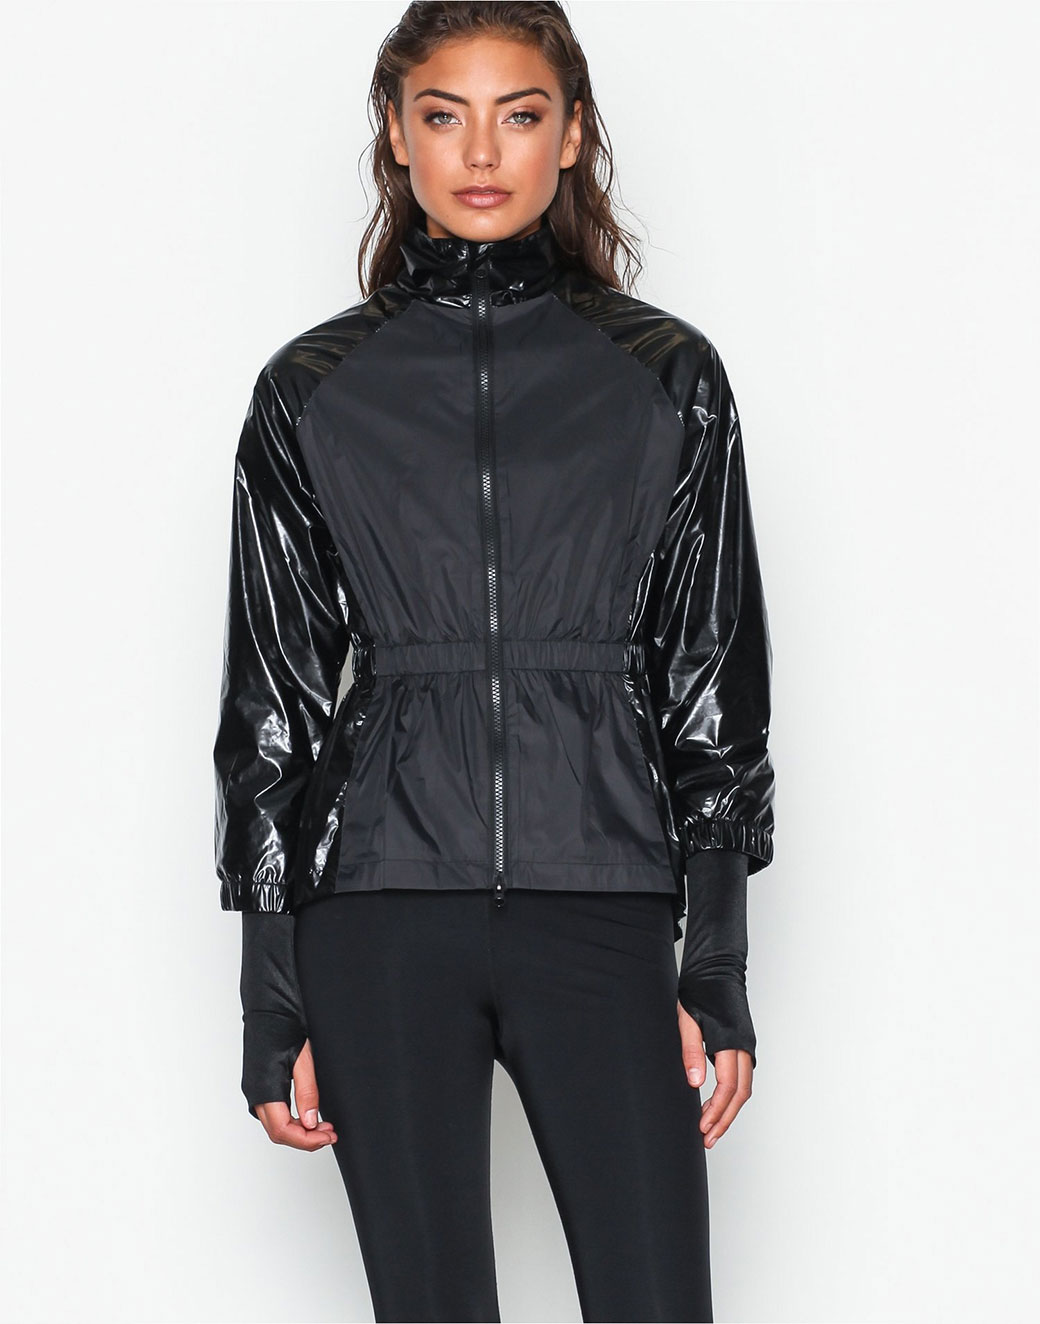 Fashionablefit Jacket 7